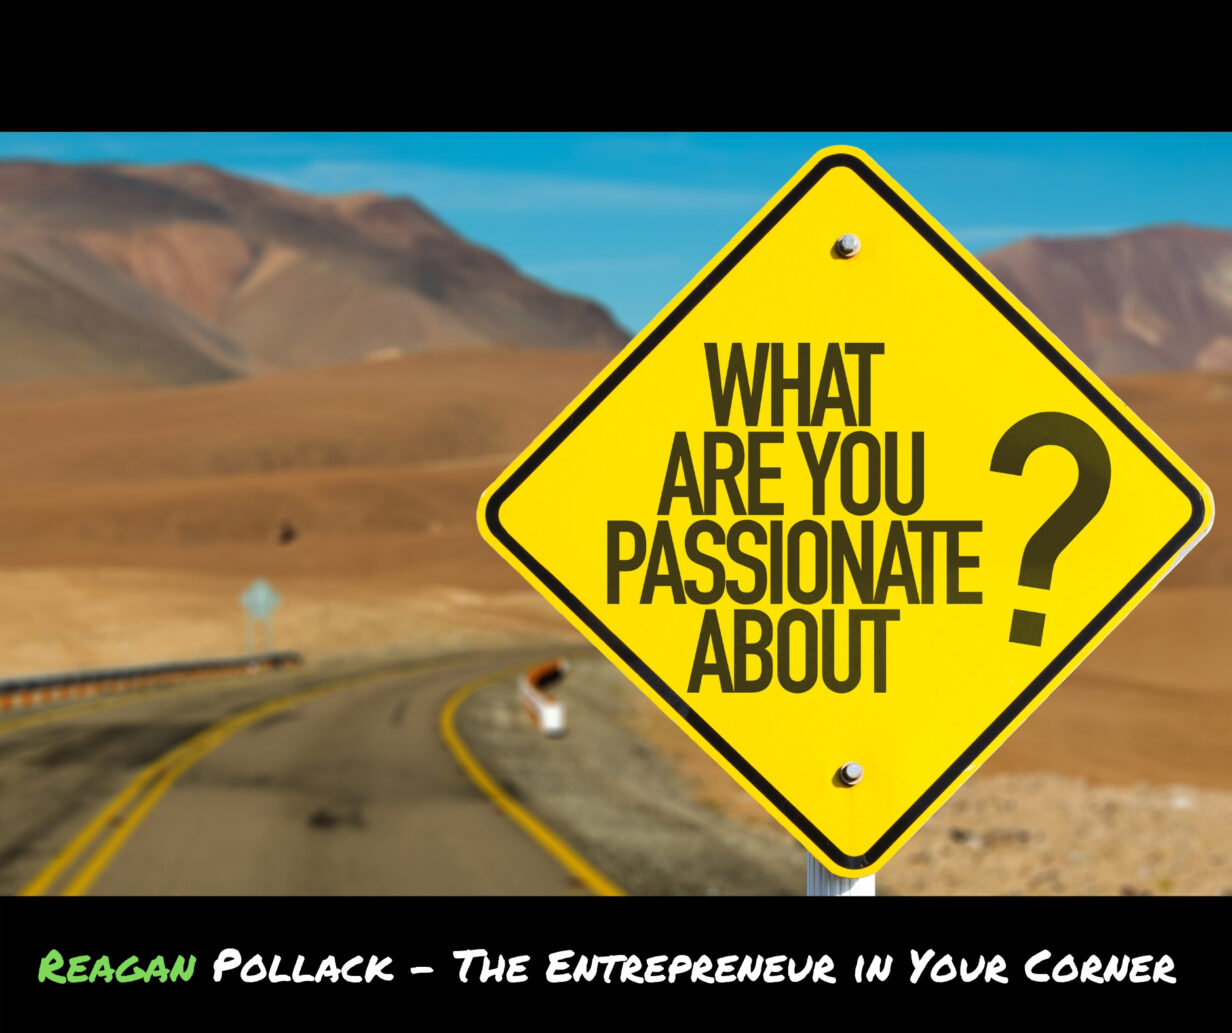 How to Find Your Passion - Reagan Pollack